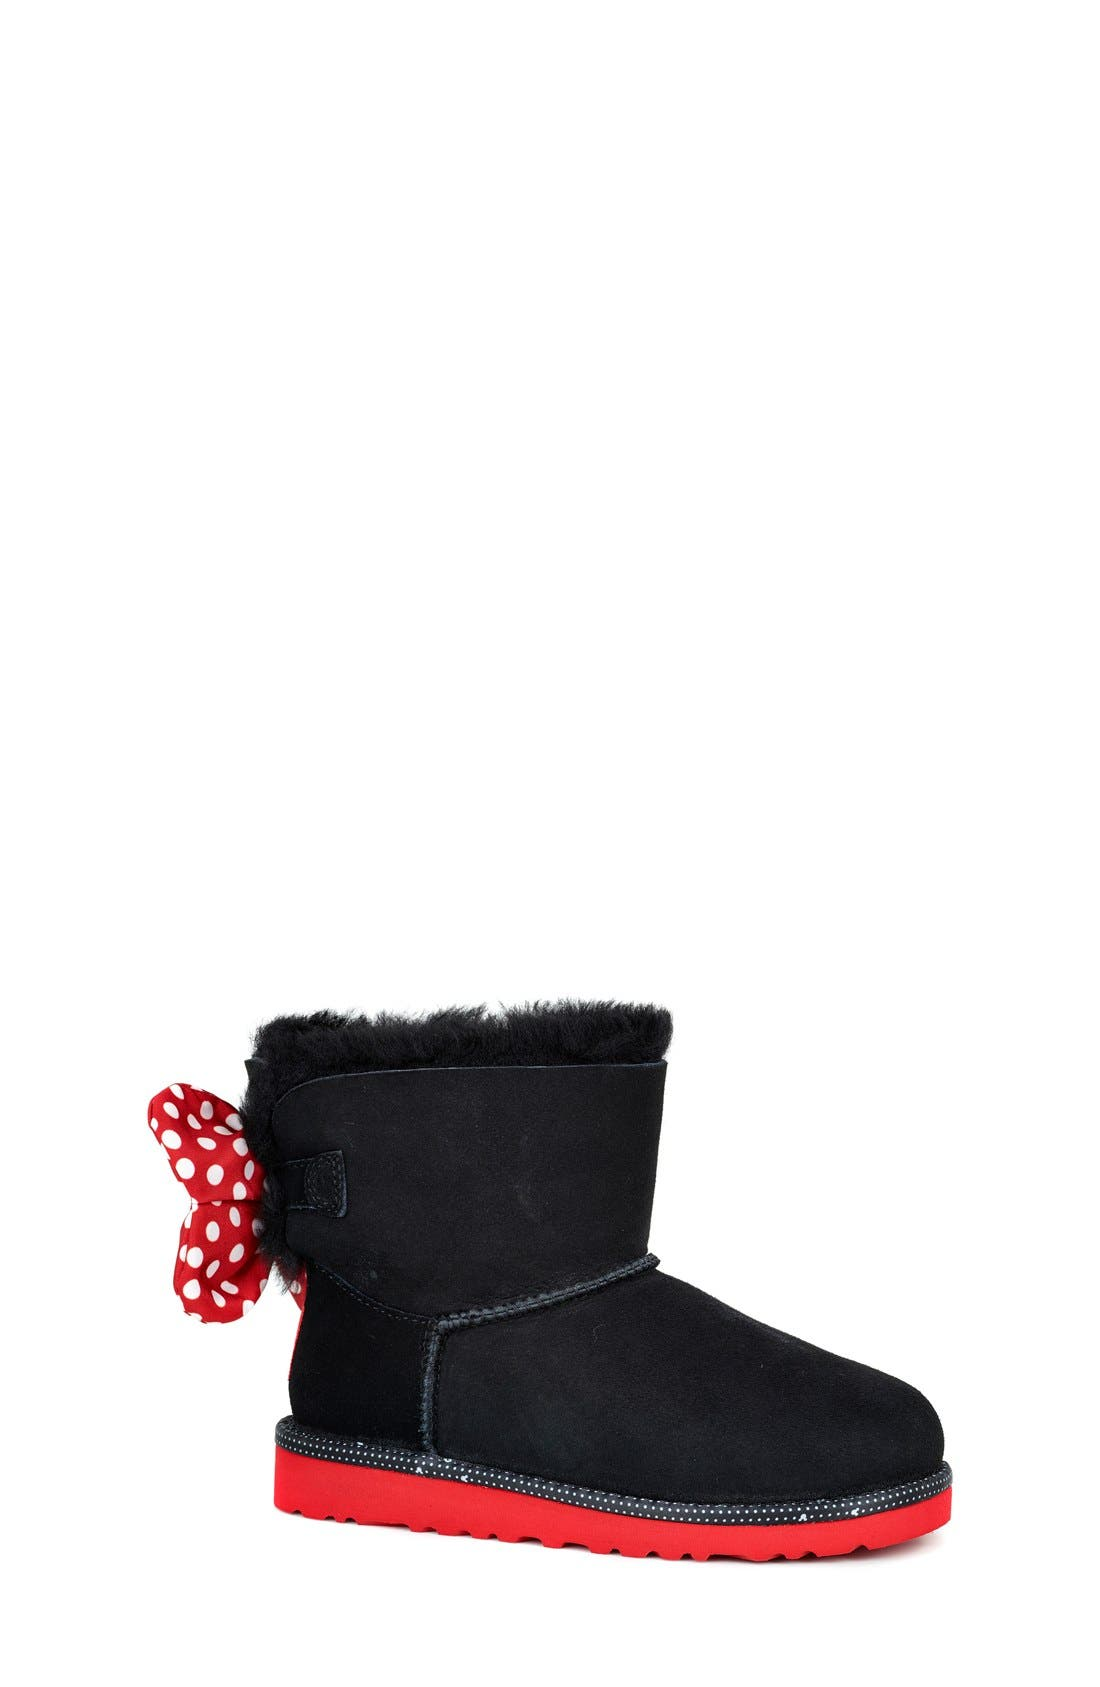 Disney<sup>®</sup> 'Sweetie Bow' Boot,                             Main thumbnail 1, color,                             001